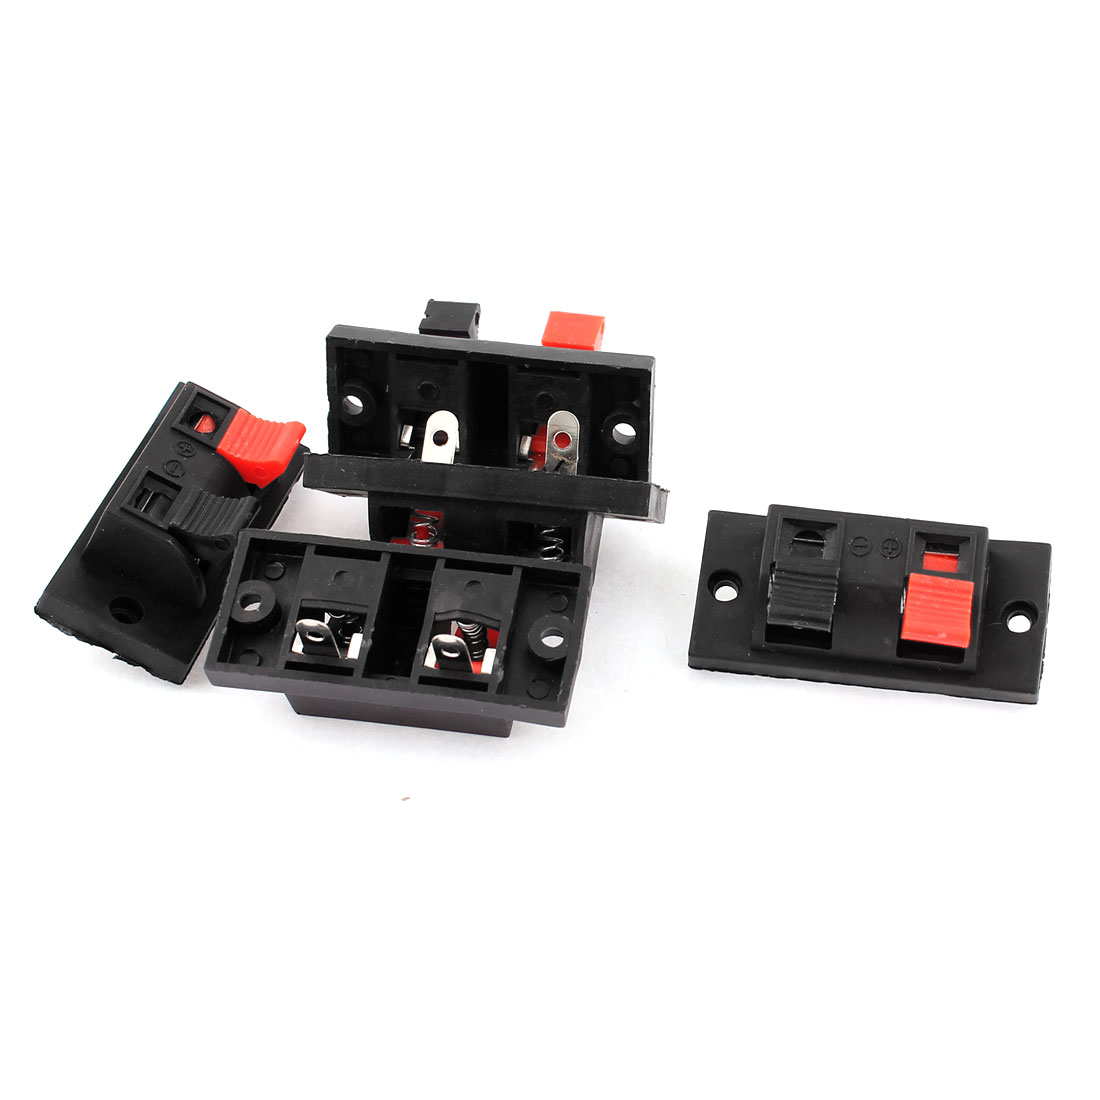 5pcs 2 Way Jack Spring Push Release Connector Plate Speaker Terminal Strip Block